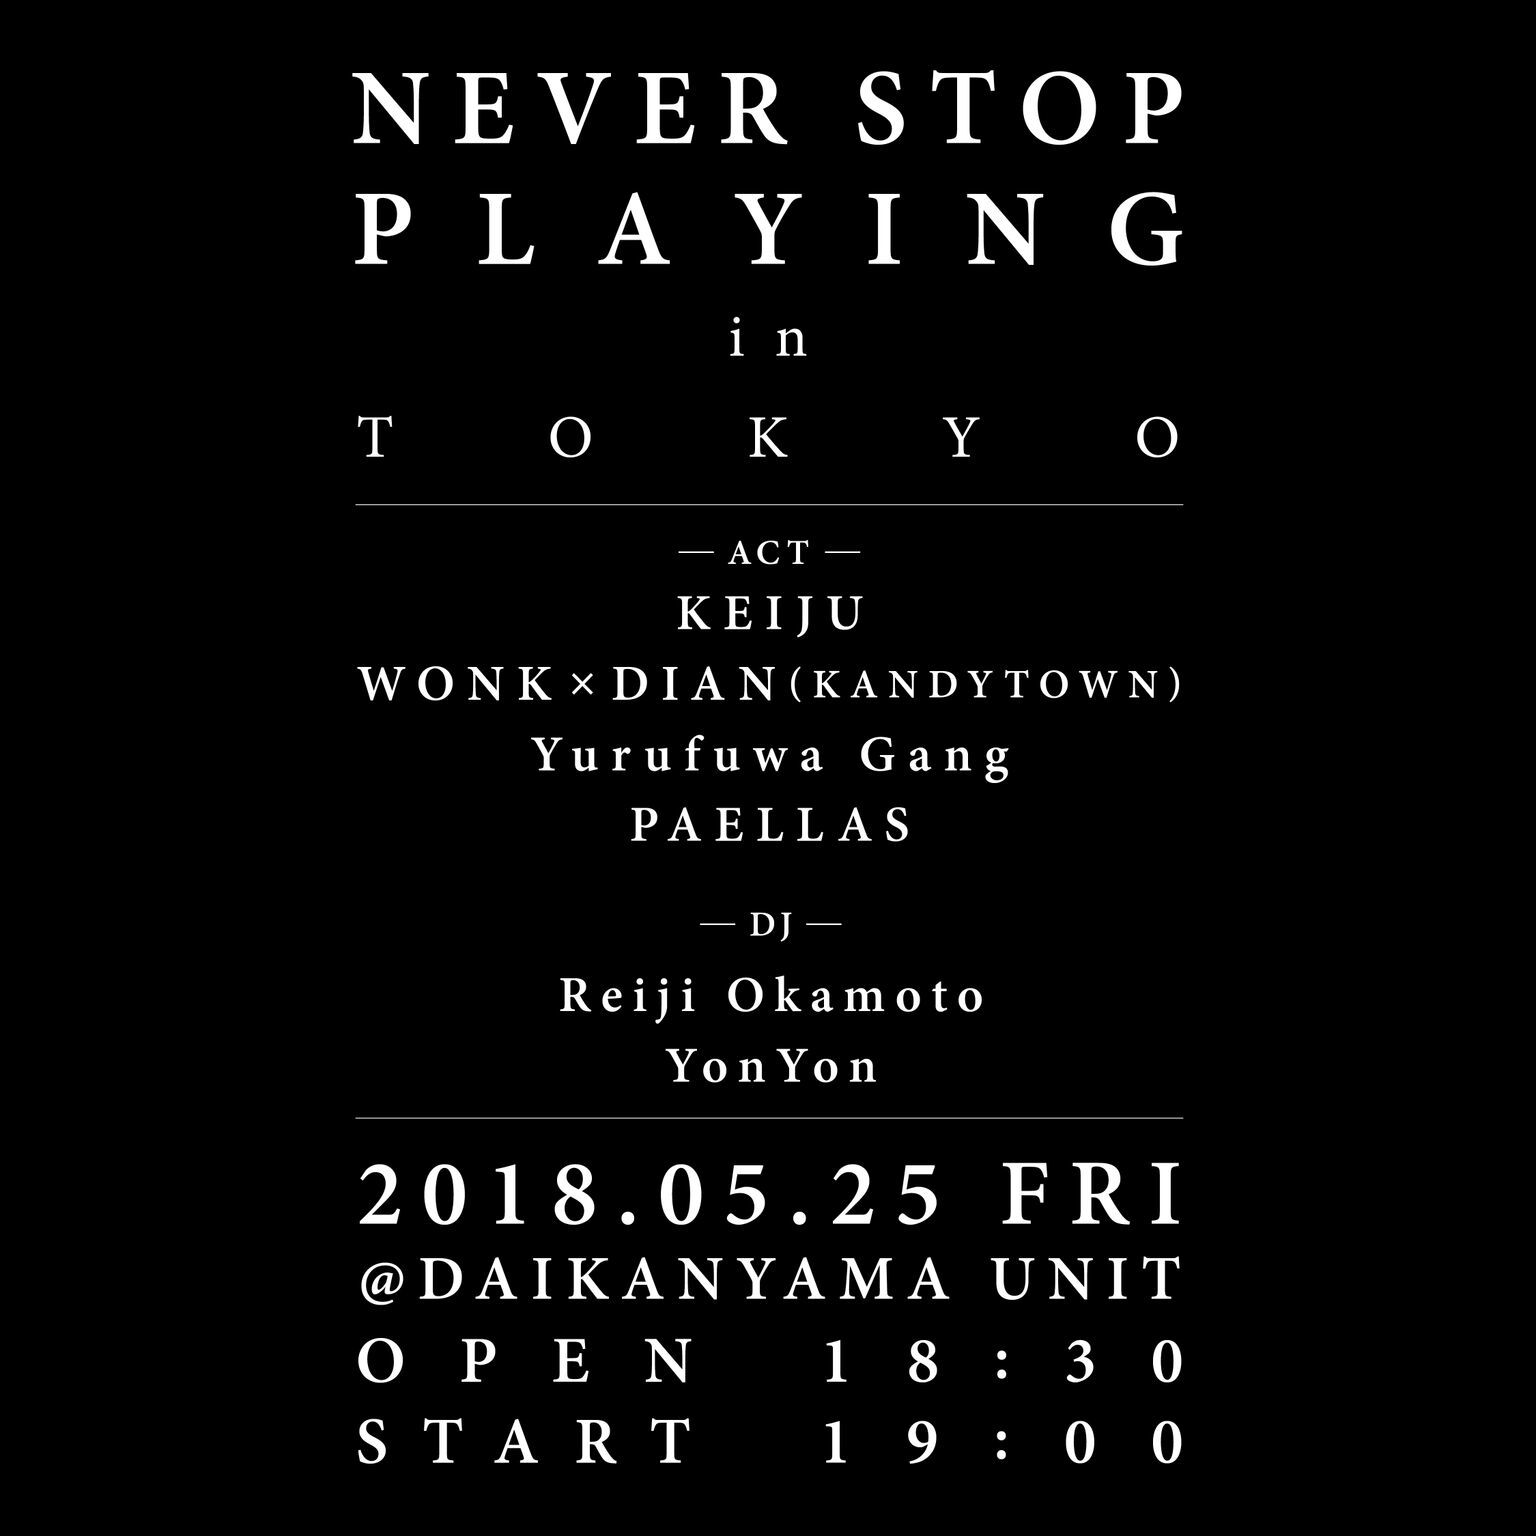 NEVER STOP PLAYING in TOKYO